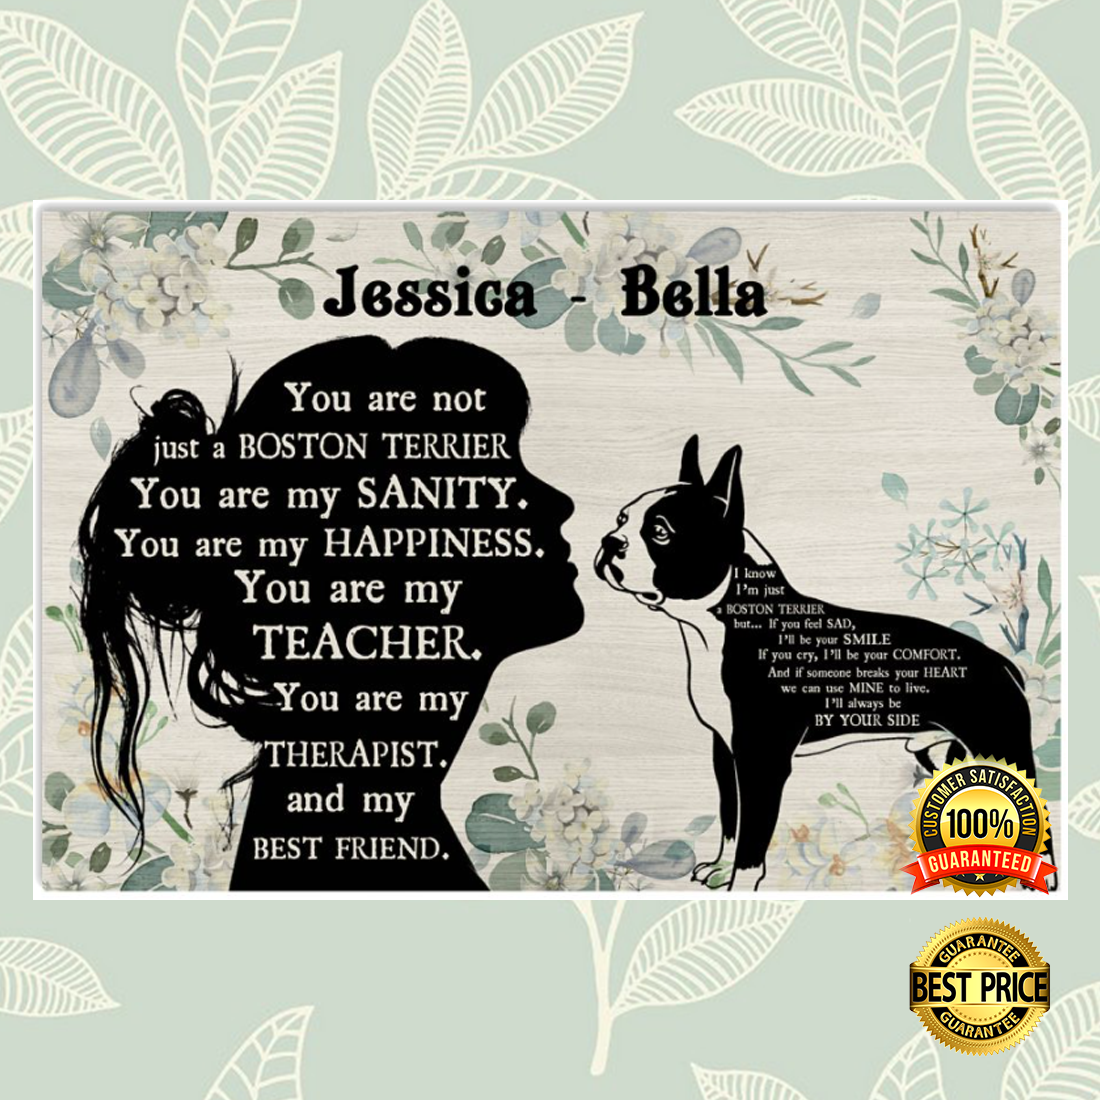 PERSONALIZED GIRL AND BOSTON TERRIER YOU ARE NOT JUST A BOSTON TERRIER POSTER 5